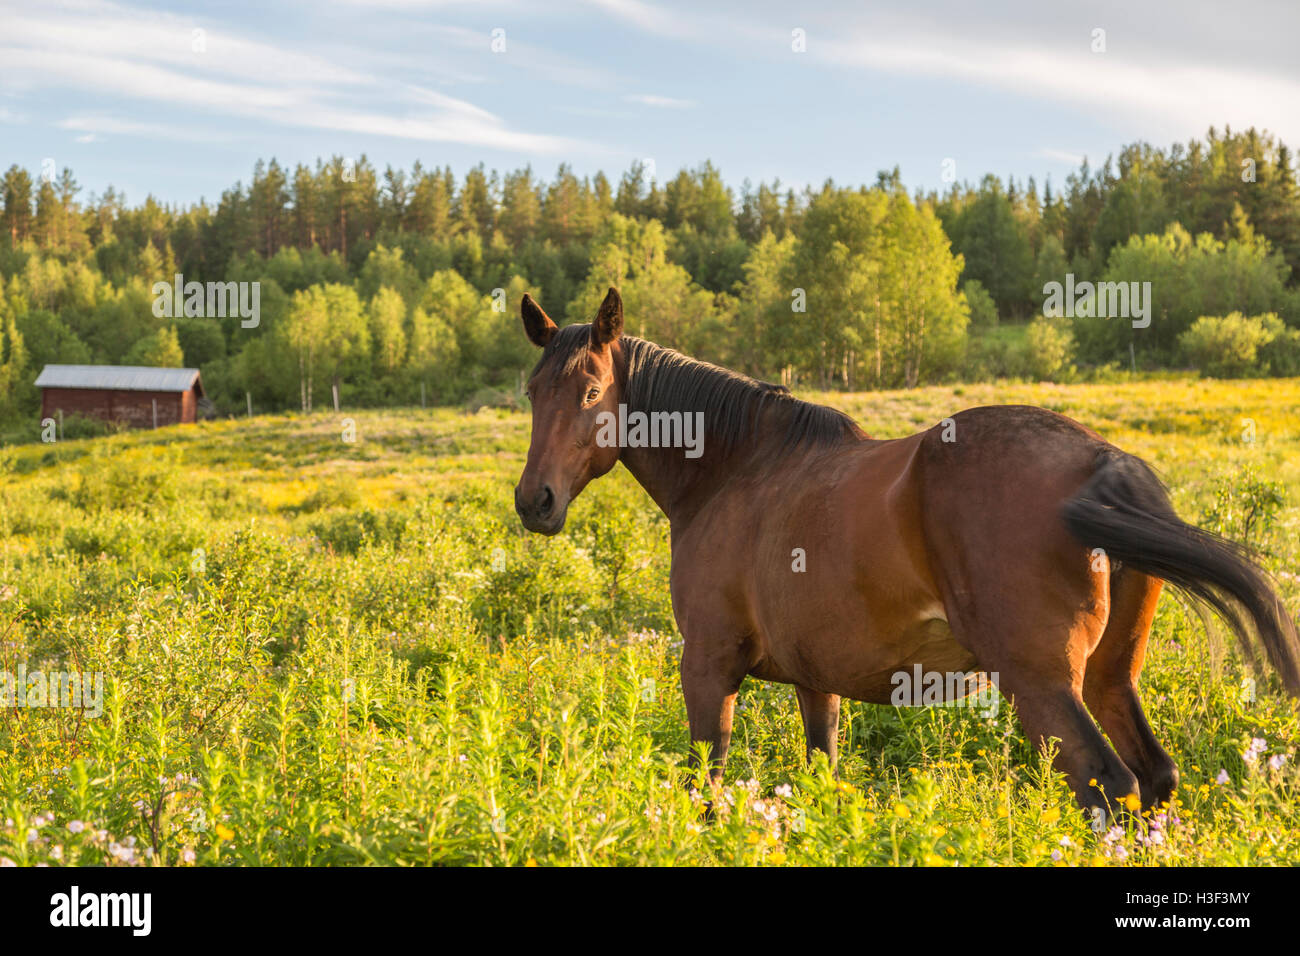 Warm blood horse in pasture ground in nice warm evening light looking towards camera, Norrbotten, Sweden - Stock Image